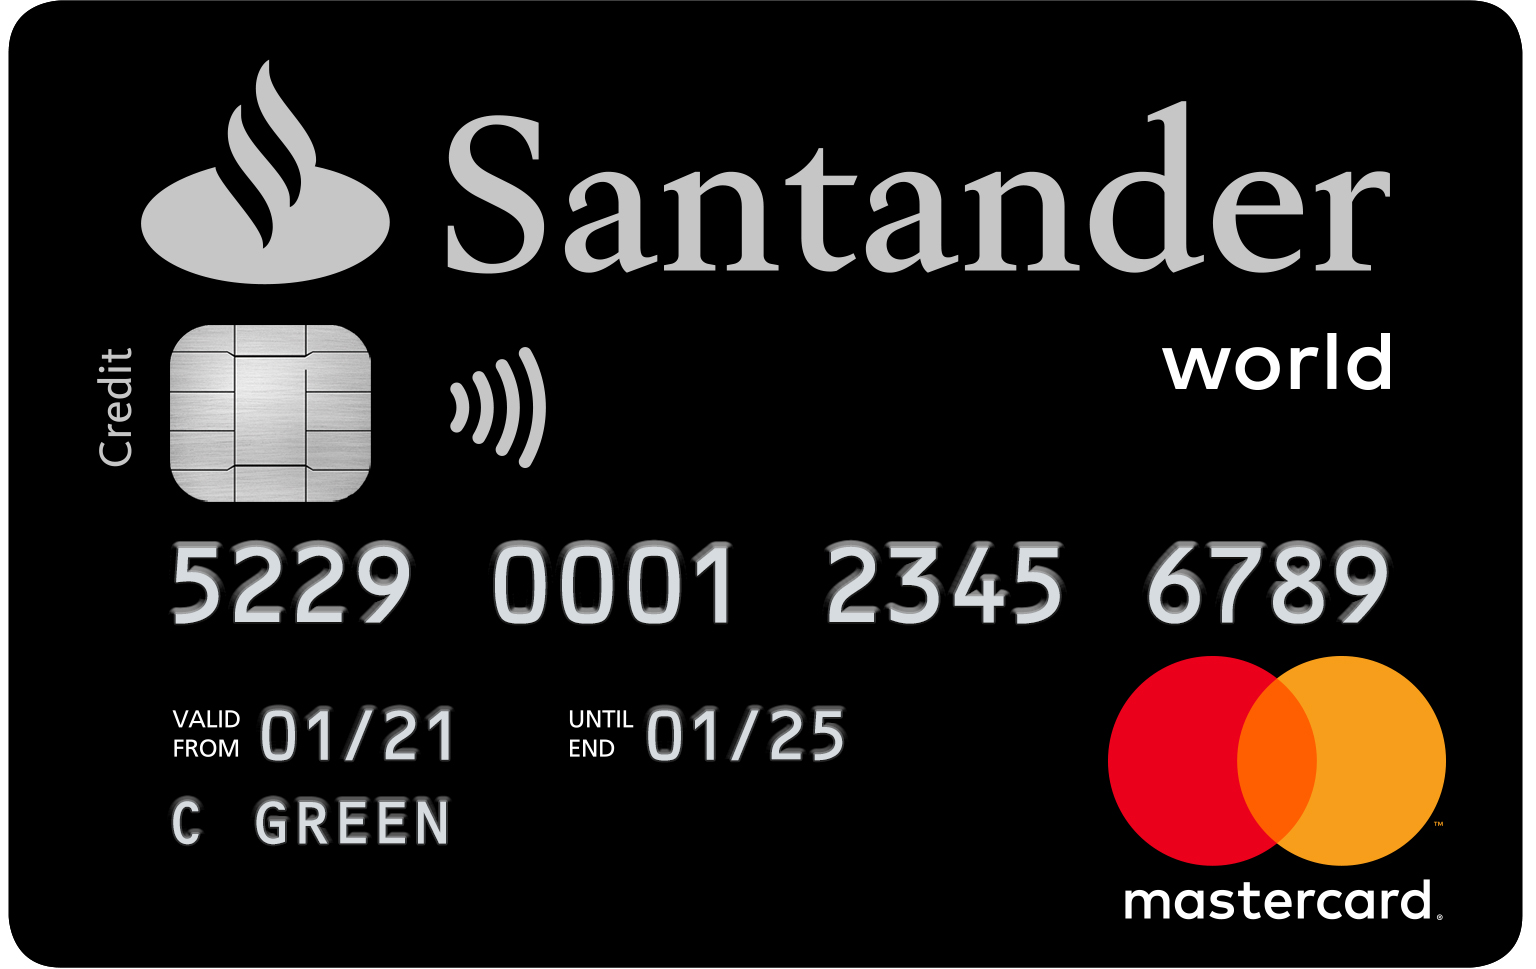 9% Credit Cards for Purchases - Interest Free Credit Cards